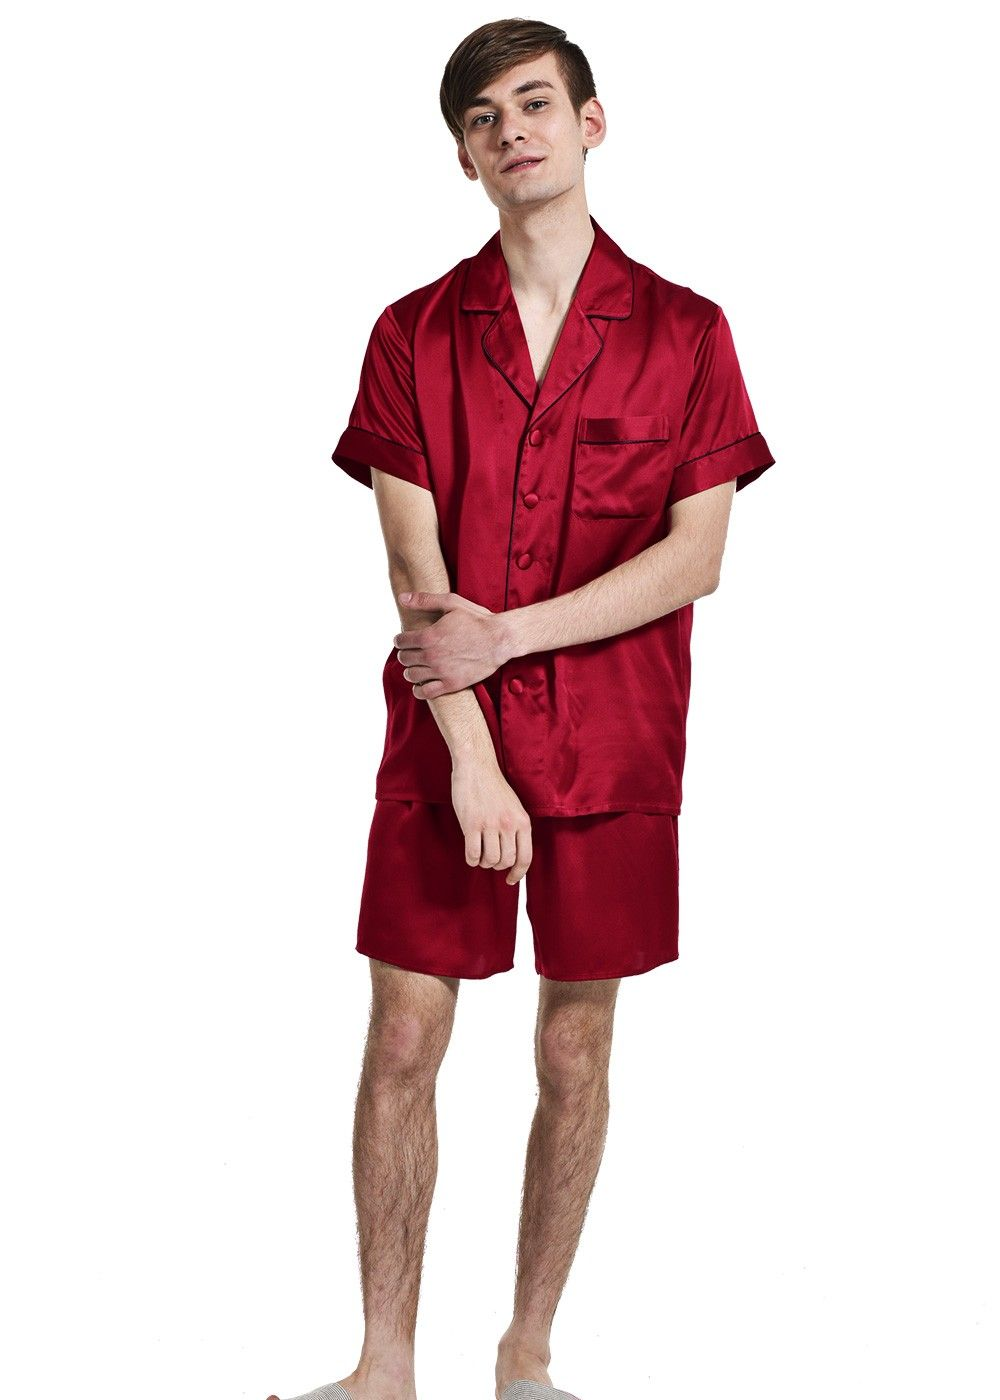 b617e77b73 Mens Pure Silk Short Pajamas Set Plus Size - OOSilk